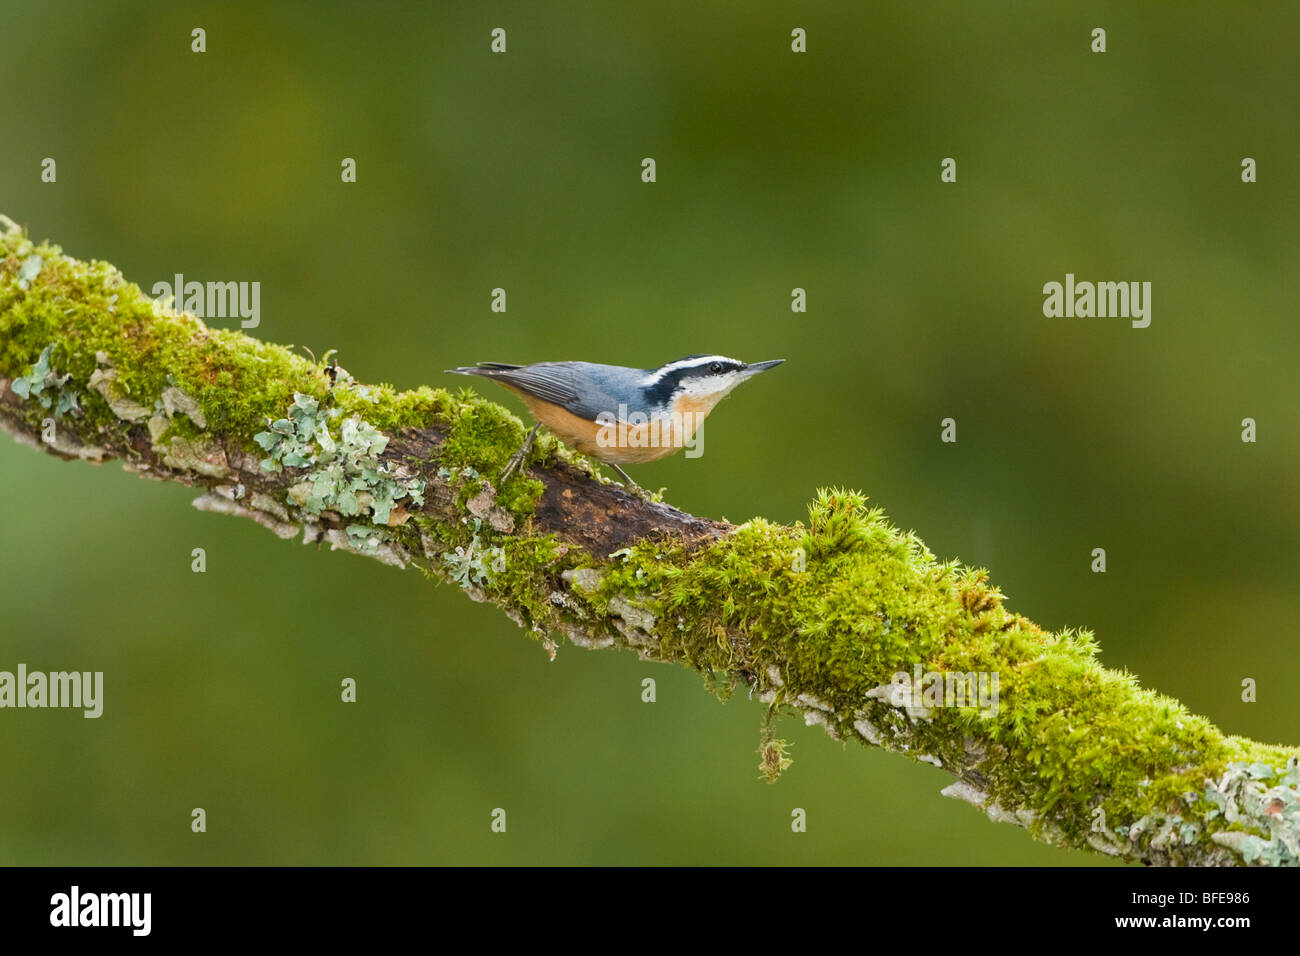 A Red-breasted nuthatch (Sitta canadensis) perches on a mossy branch in Victoria, Vancouver Island, British Columbia, - Stock Image